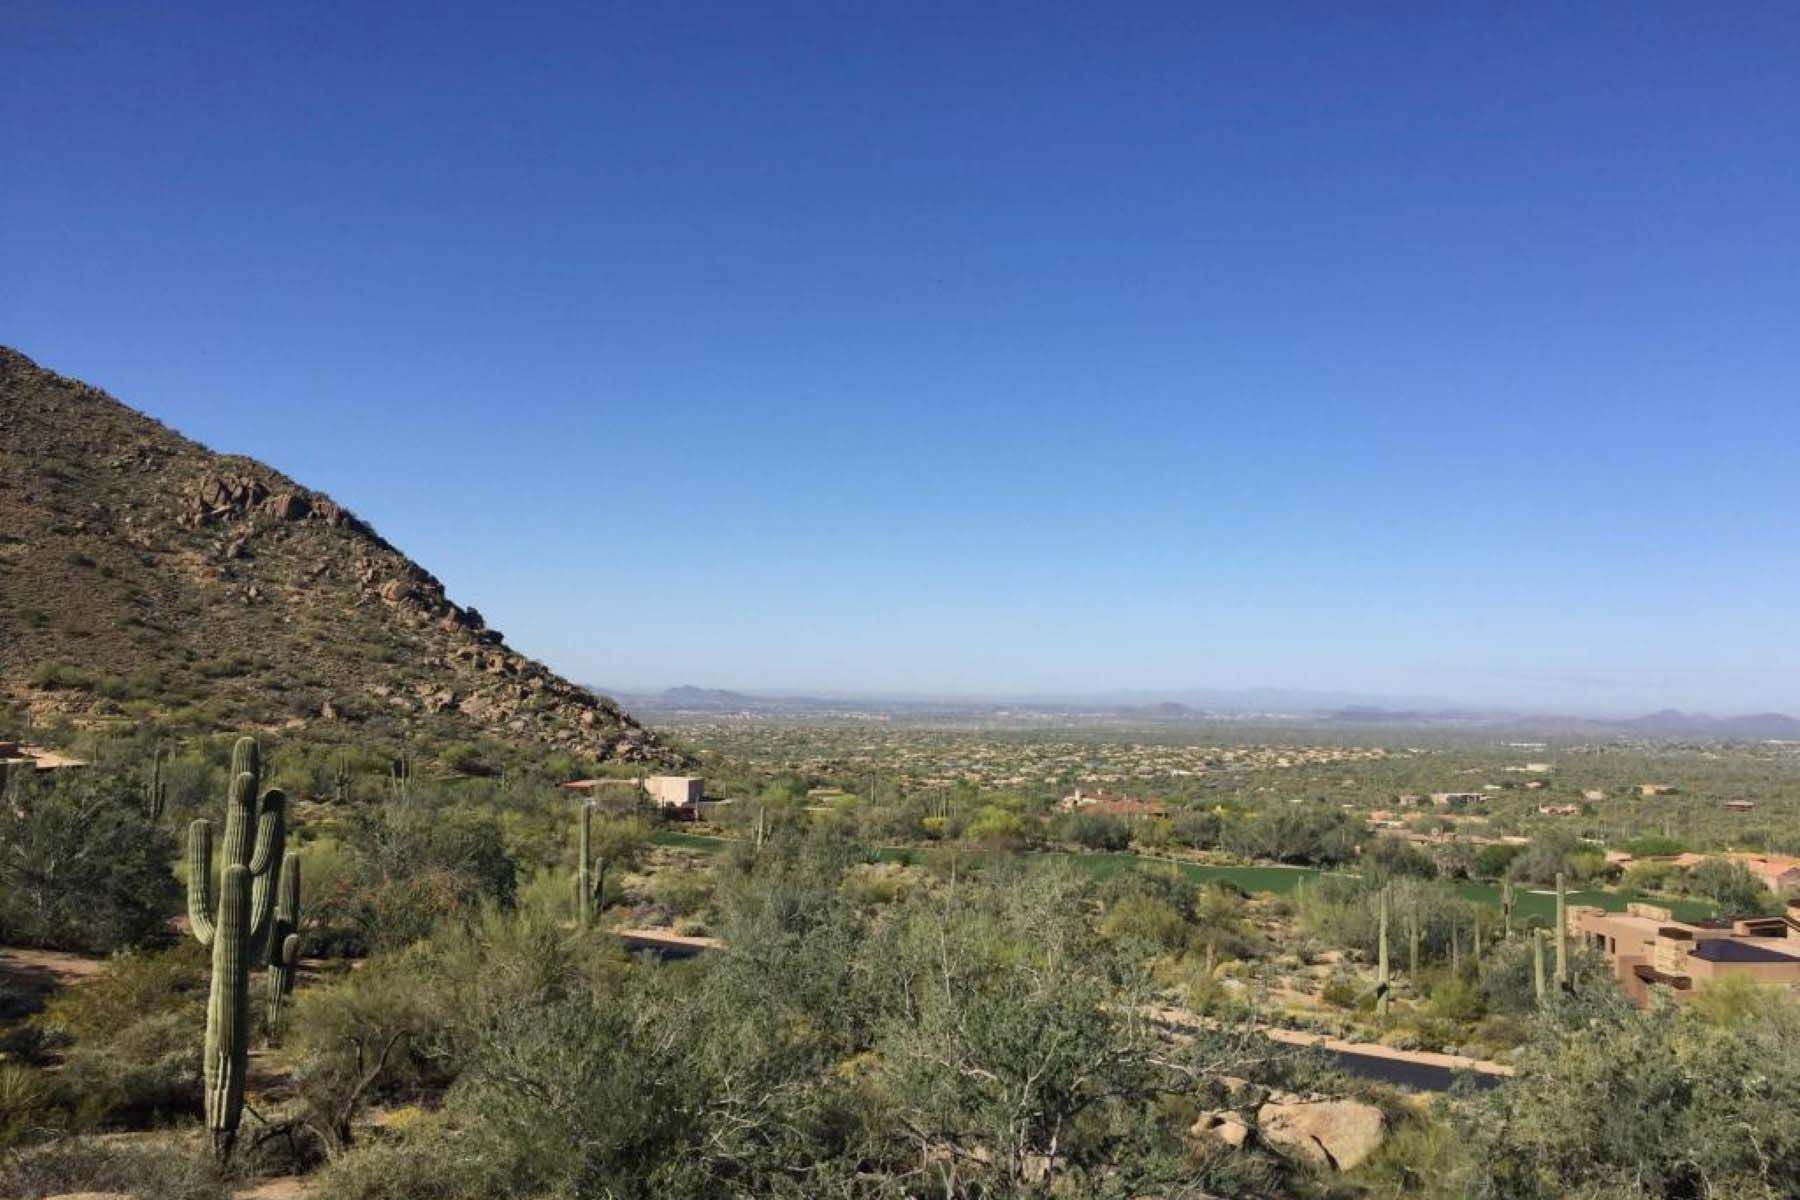 Land for Sale at Fabulous 1.86 Acre Homesite in Prestigious Golf Community of Estancia 27157 N 98th Way #222 Scottsdale, Arizona, 85262 United States